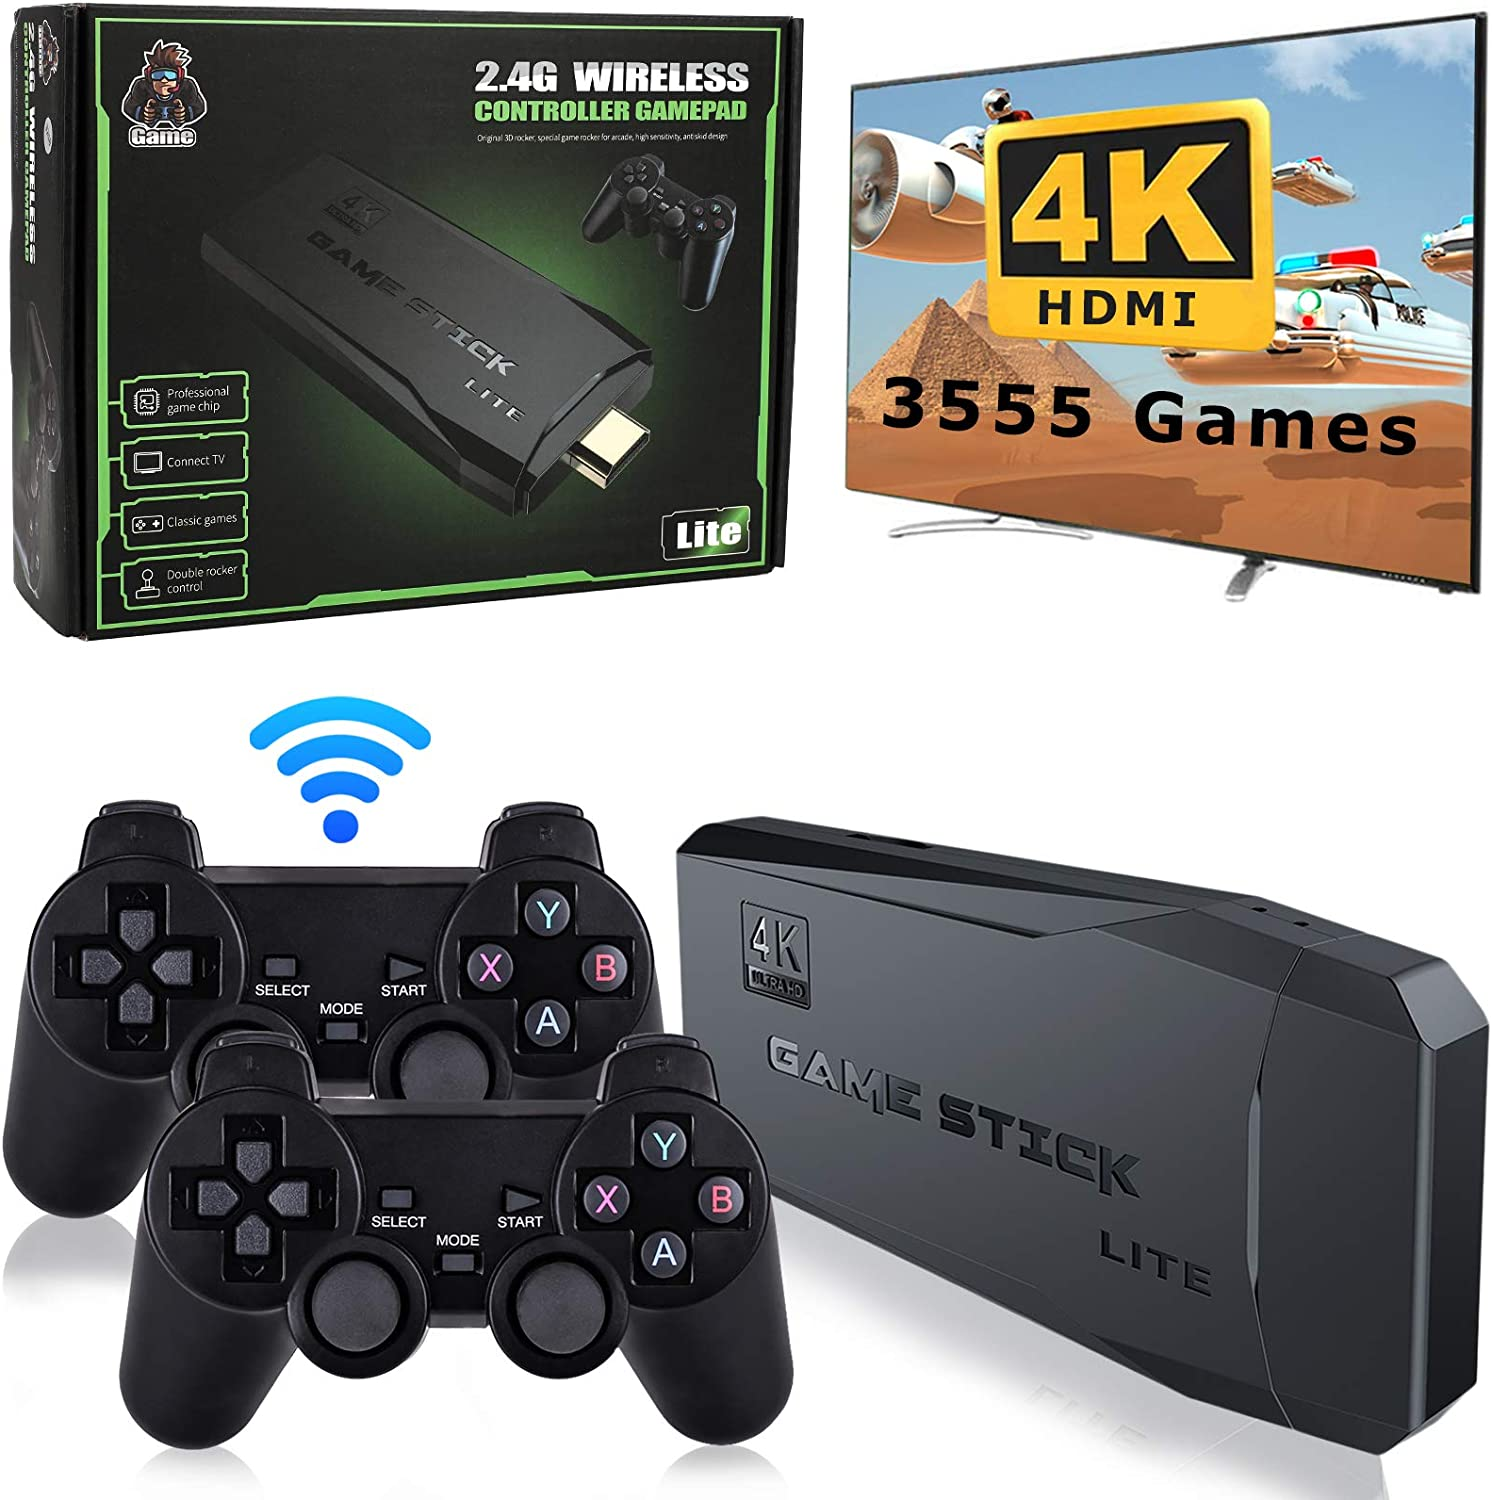 Super Integrated Retro Game Console, Plug and Play Video Game Stick, Built-in 3500 Games, 9 Classic emulators, High Definition HDMI Output for TV, 4K Console with Dual 2.4G Wireless Controllers - 32G: Toys & Games